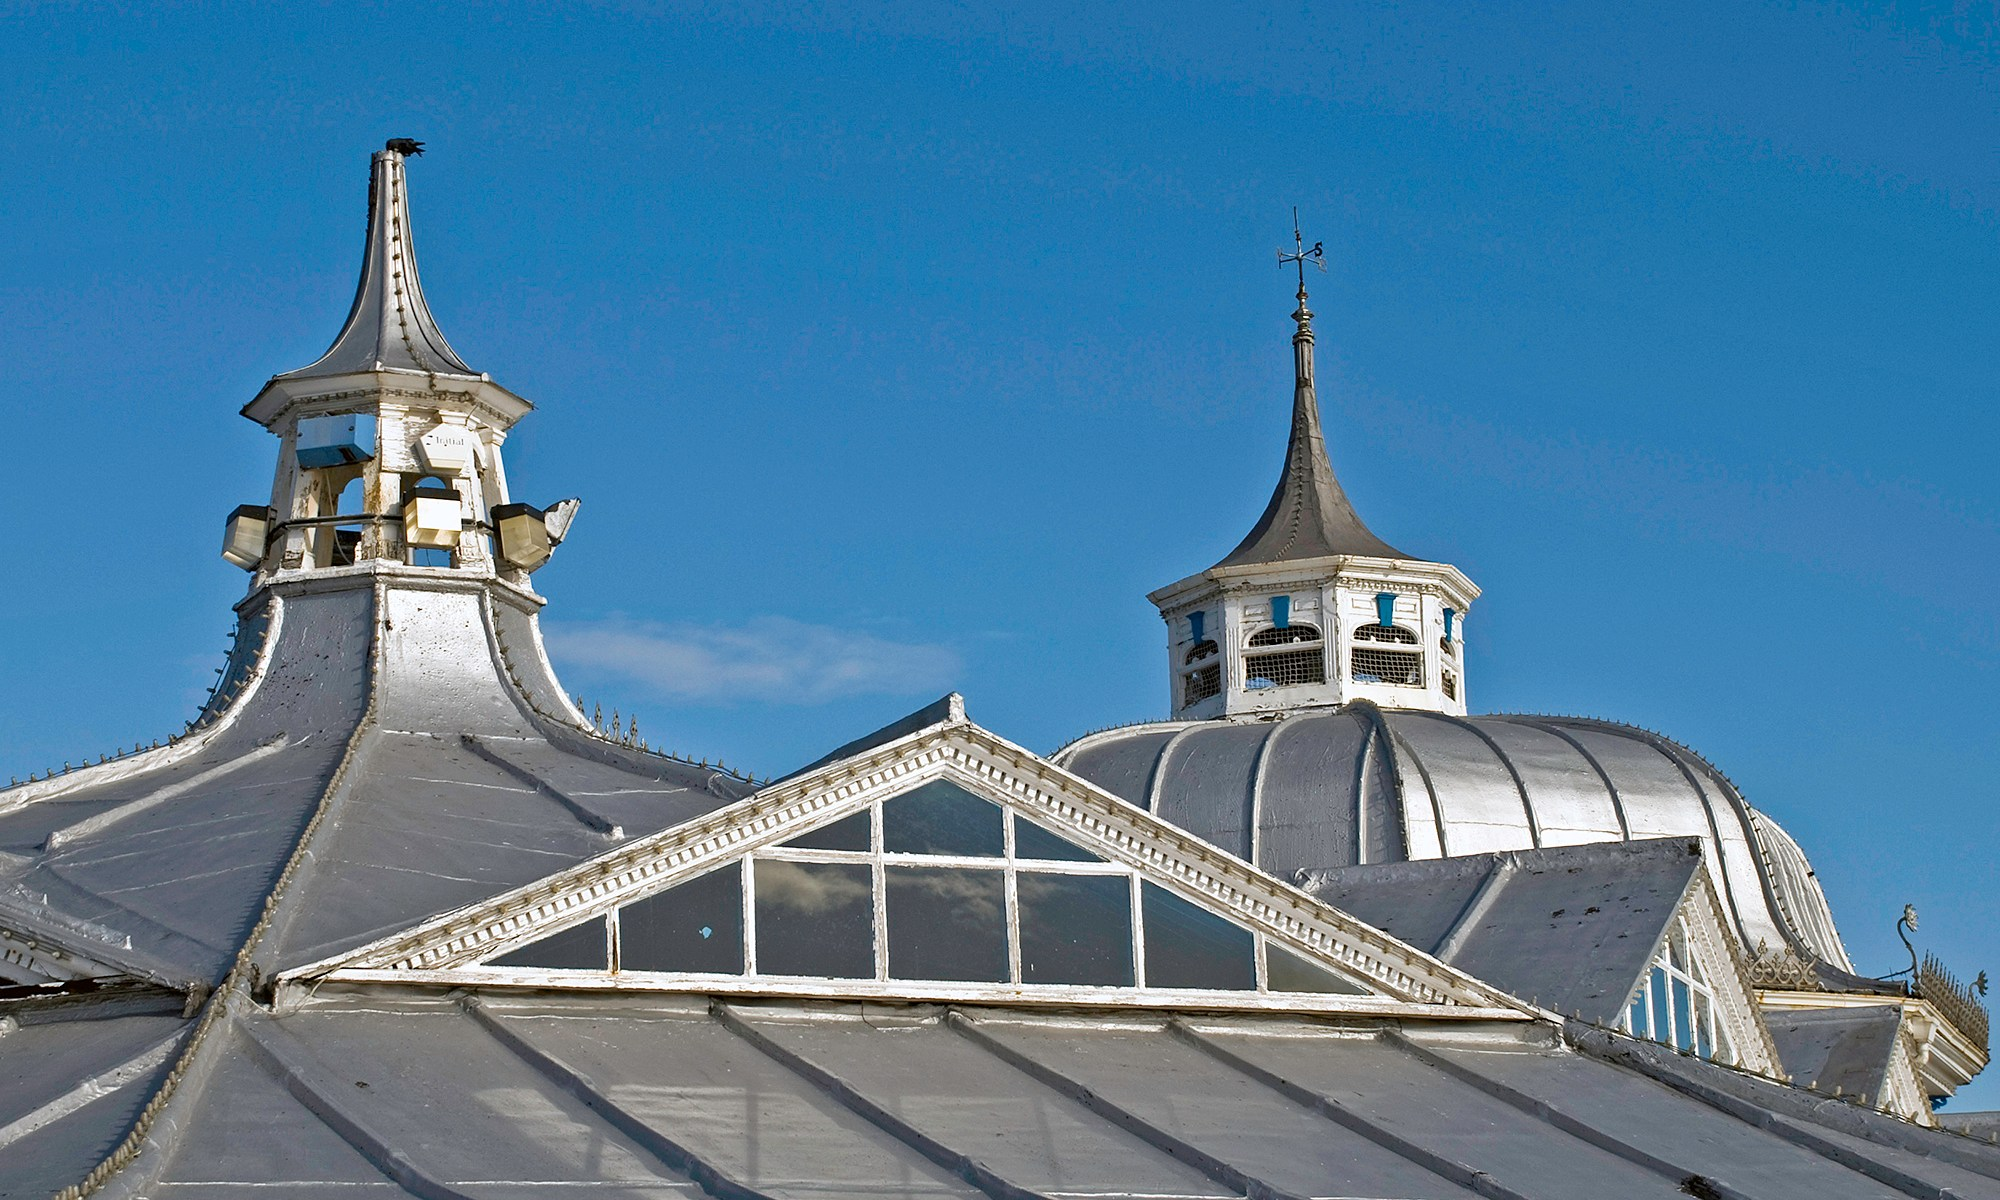 Llandudno Pier Roof Top Detail